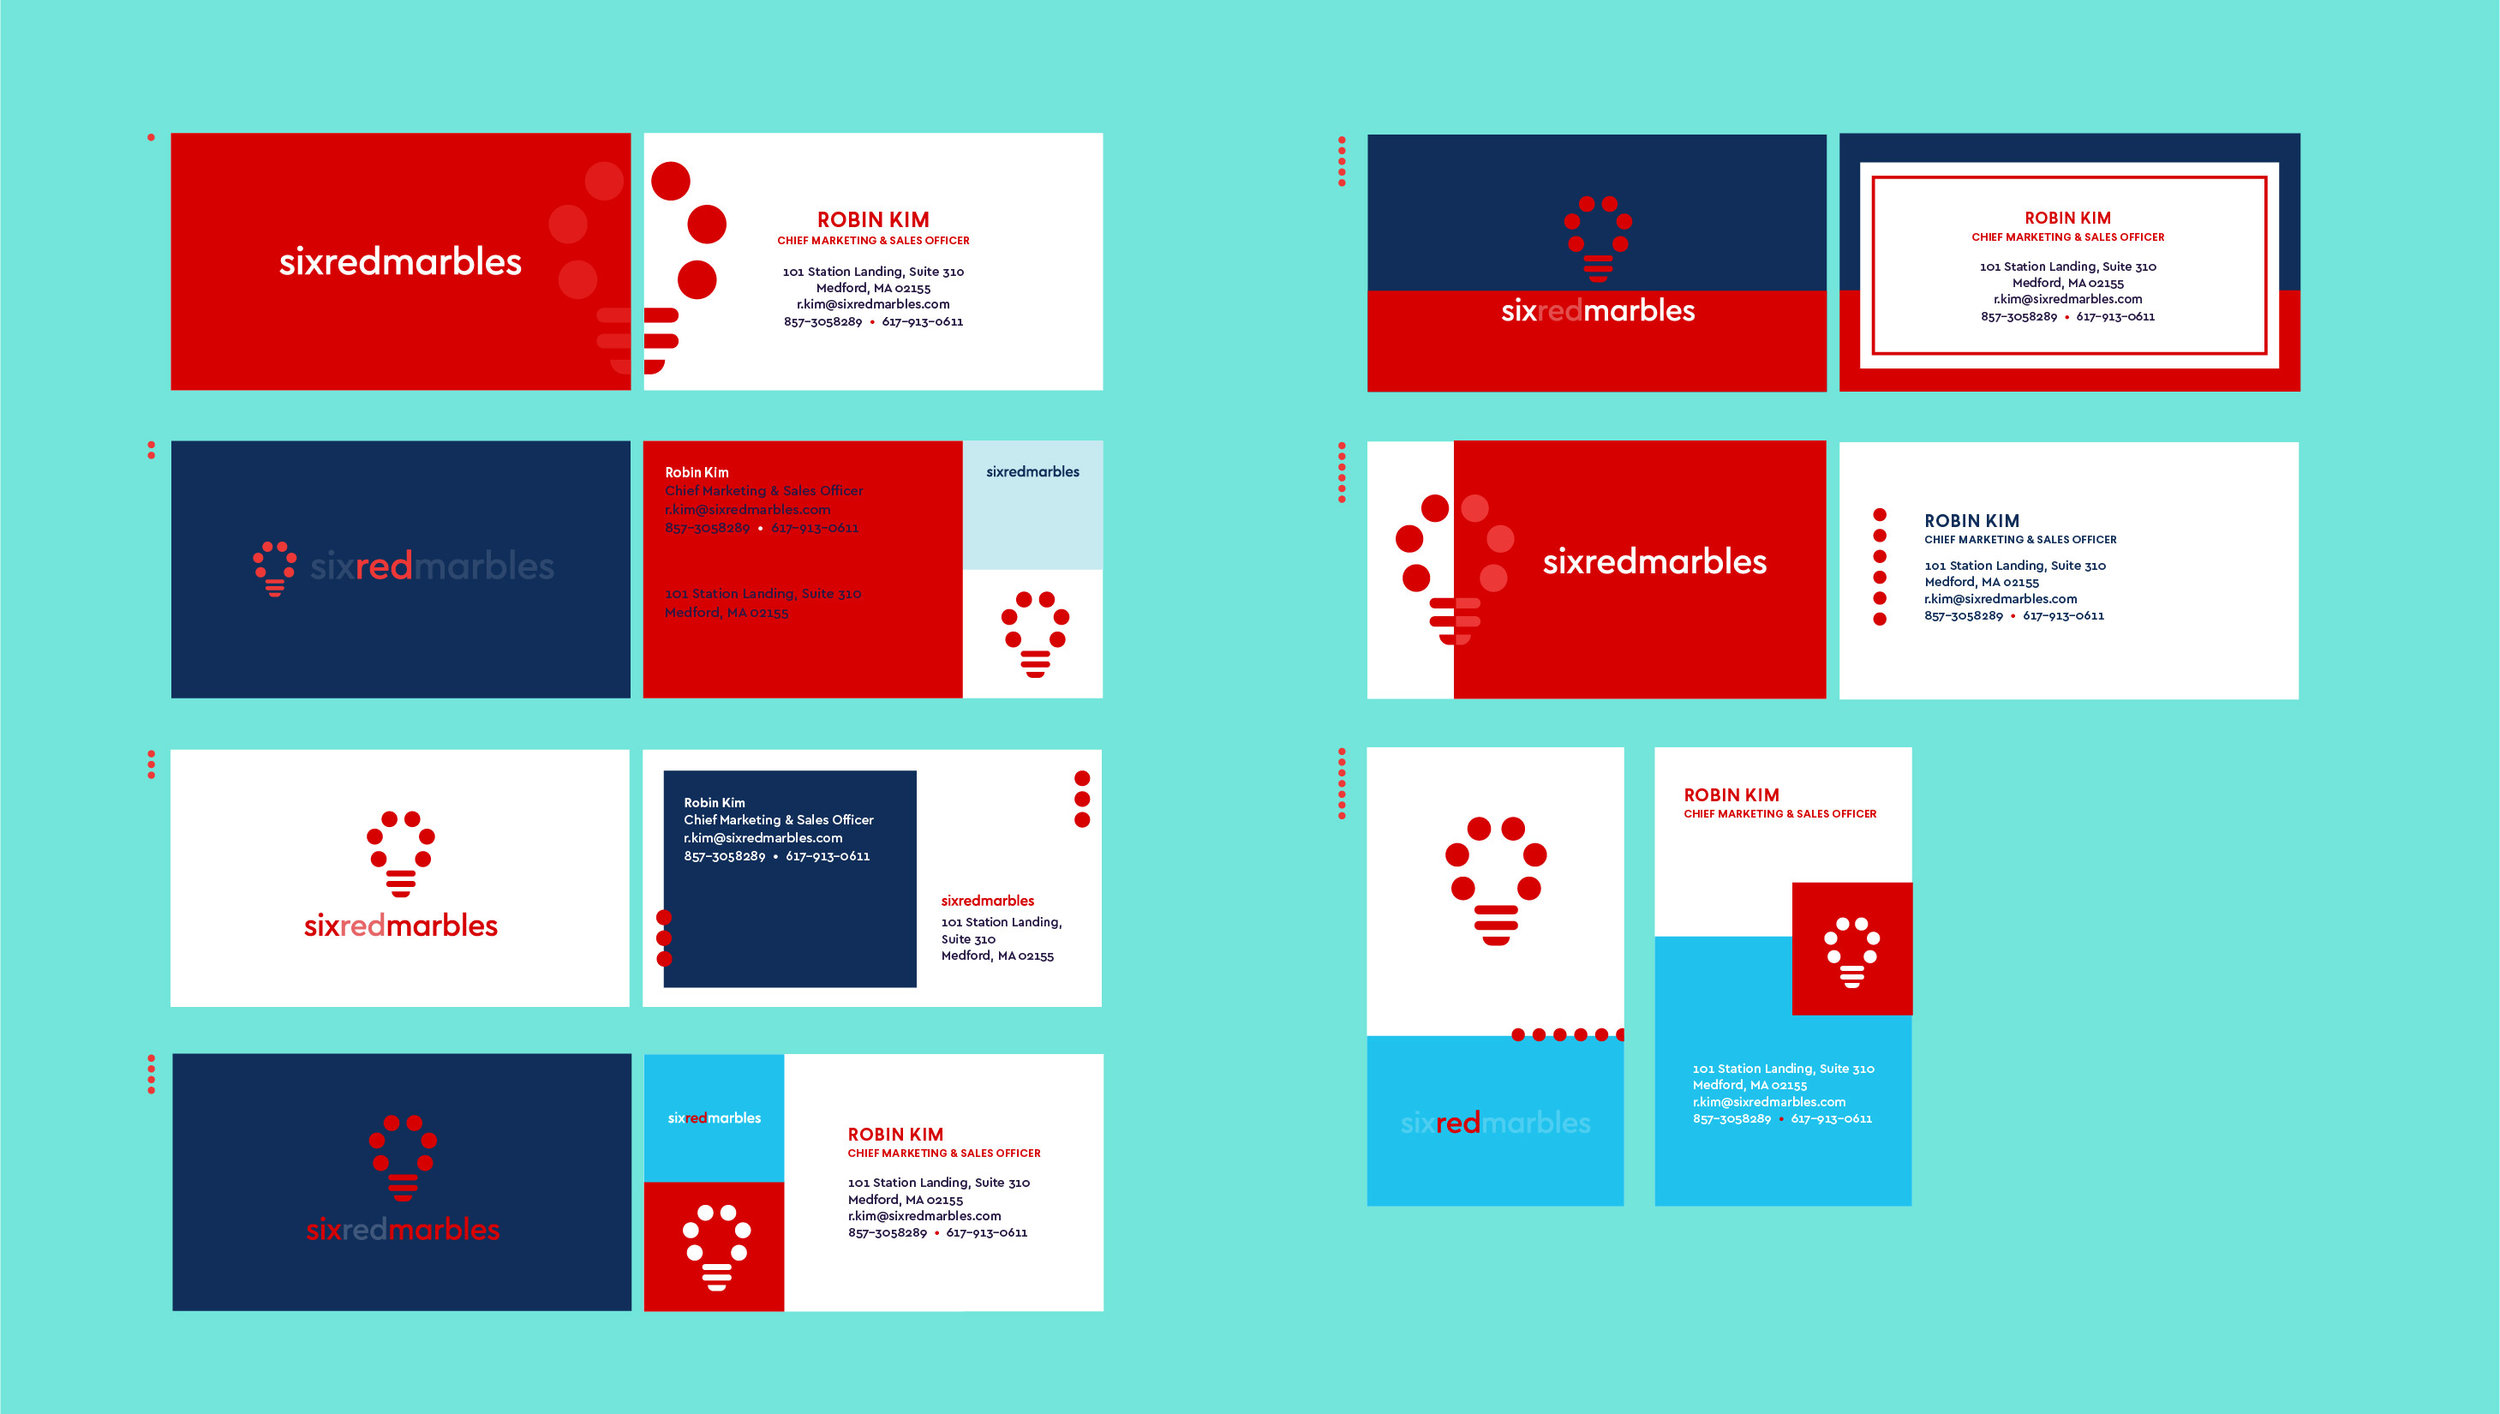 Six red marbles - SRM was in need of a brand refresh to modernize their look and mission. I worked on business card design, web design and an accompanying icon set for the rebrand.